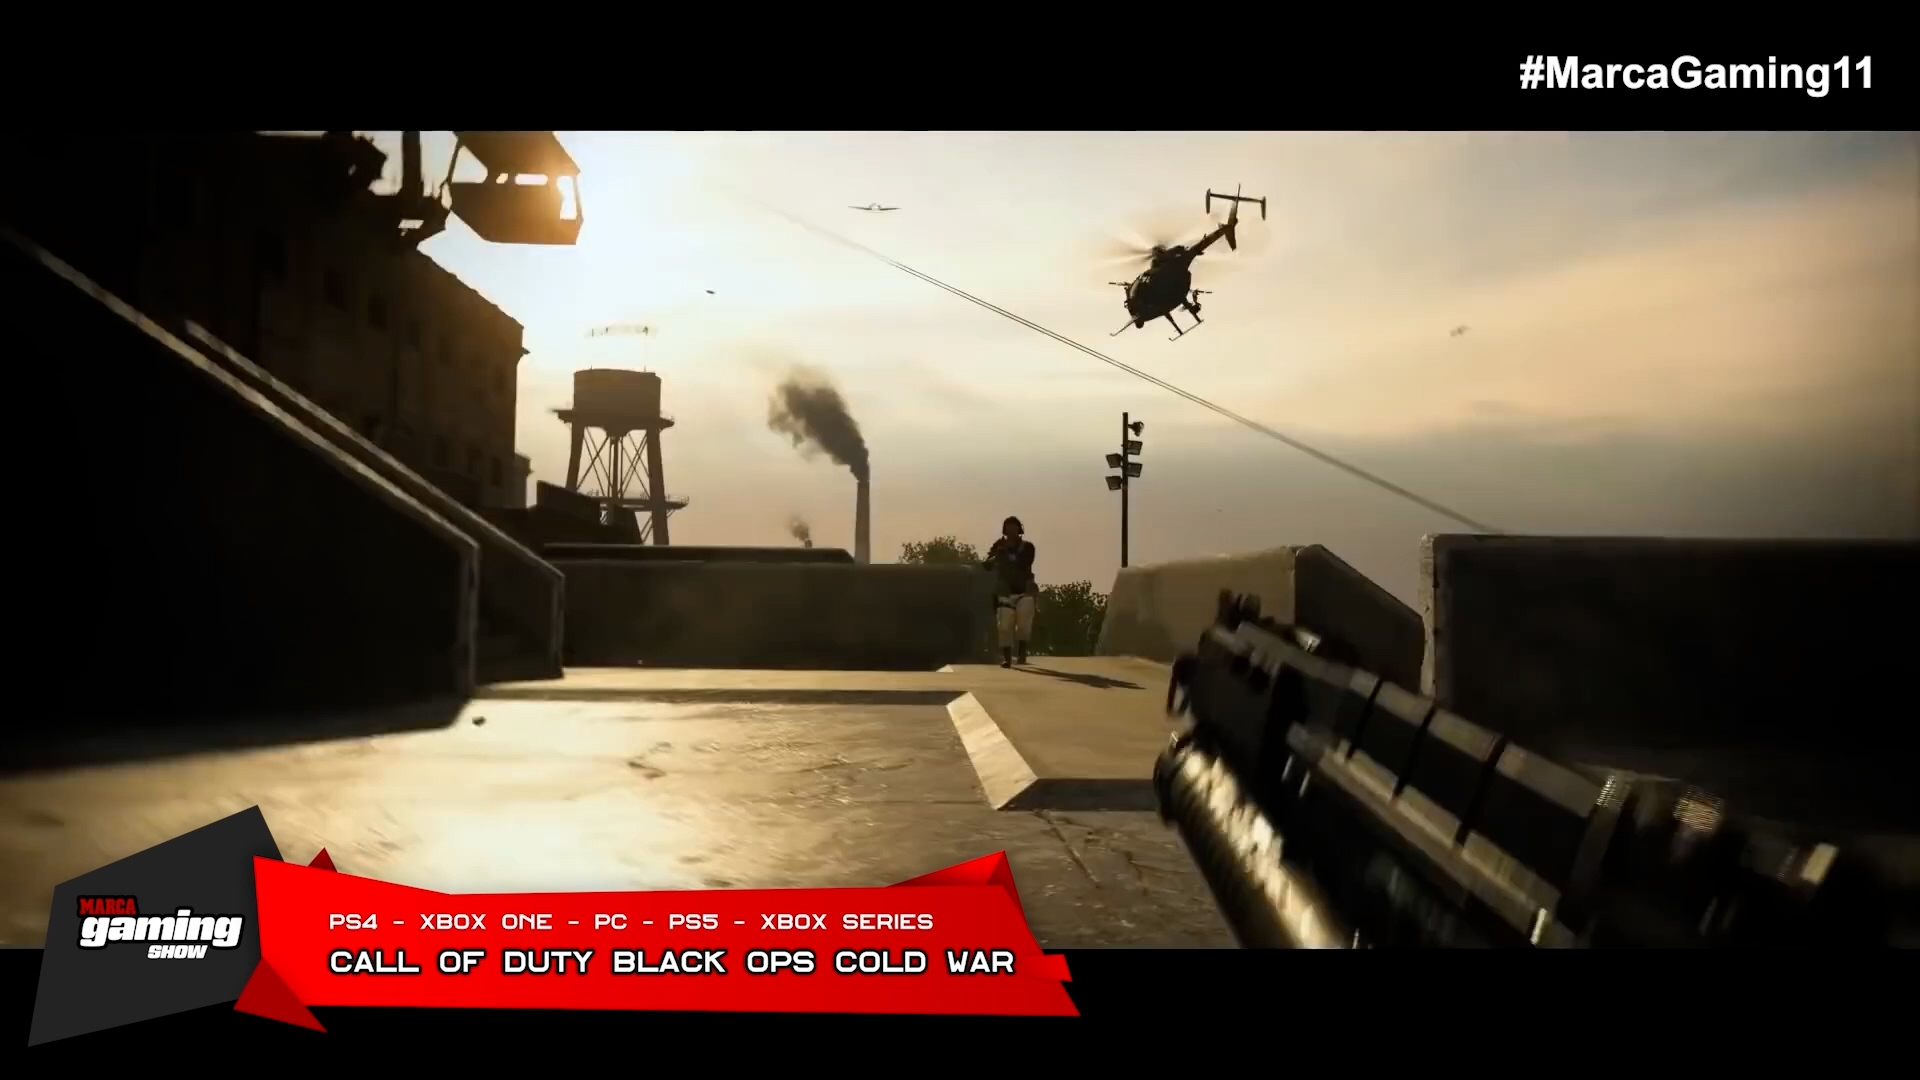 Call of Duty Black Ops Cold War (PS5 - XBOX SERIES - PS4 - XBOX ONE - PC)